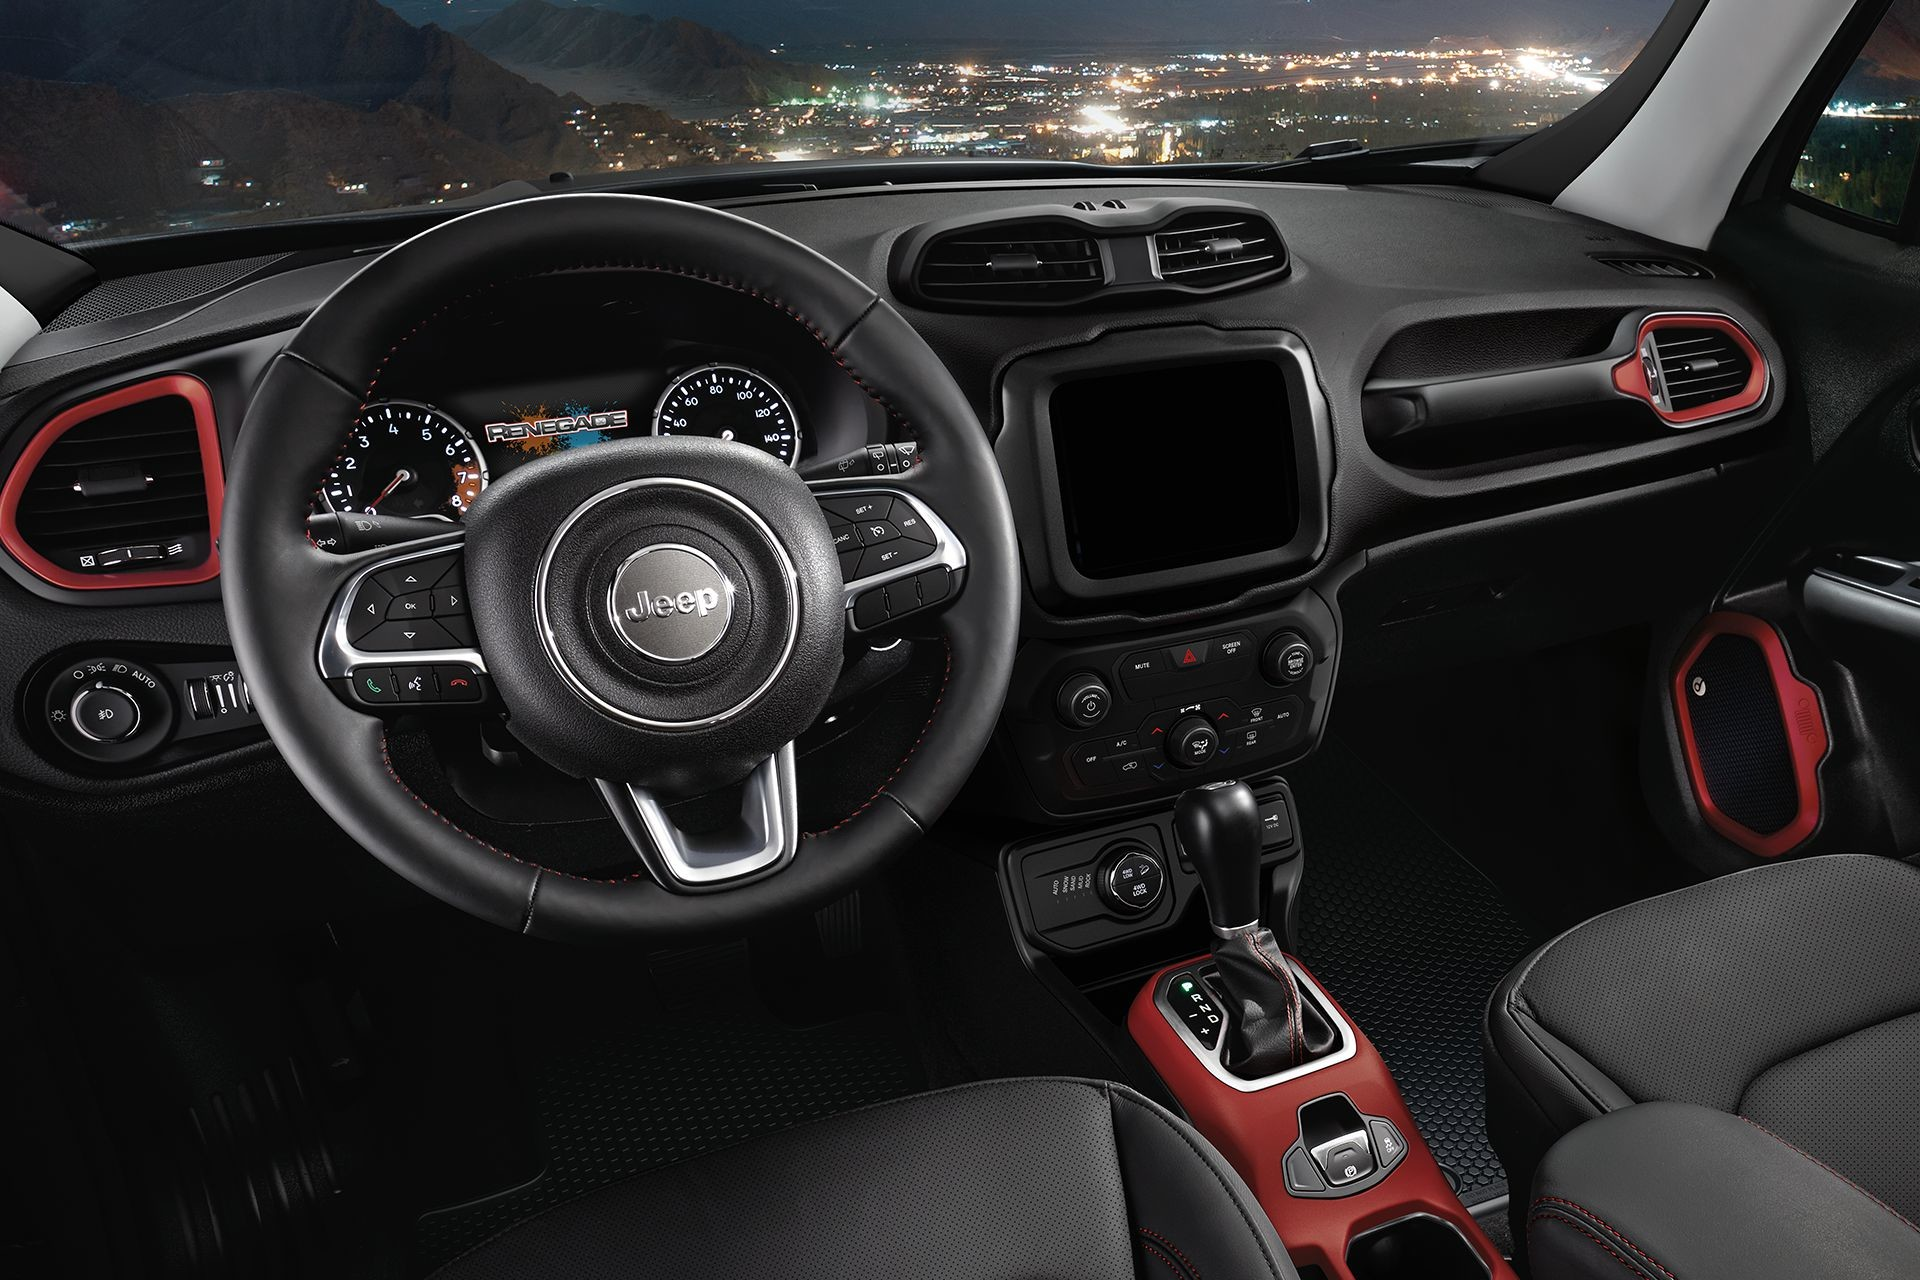 2018 Jeep Renegade interior advanced connectivity with UConnect